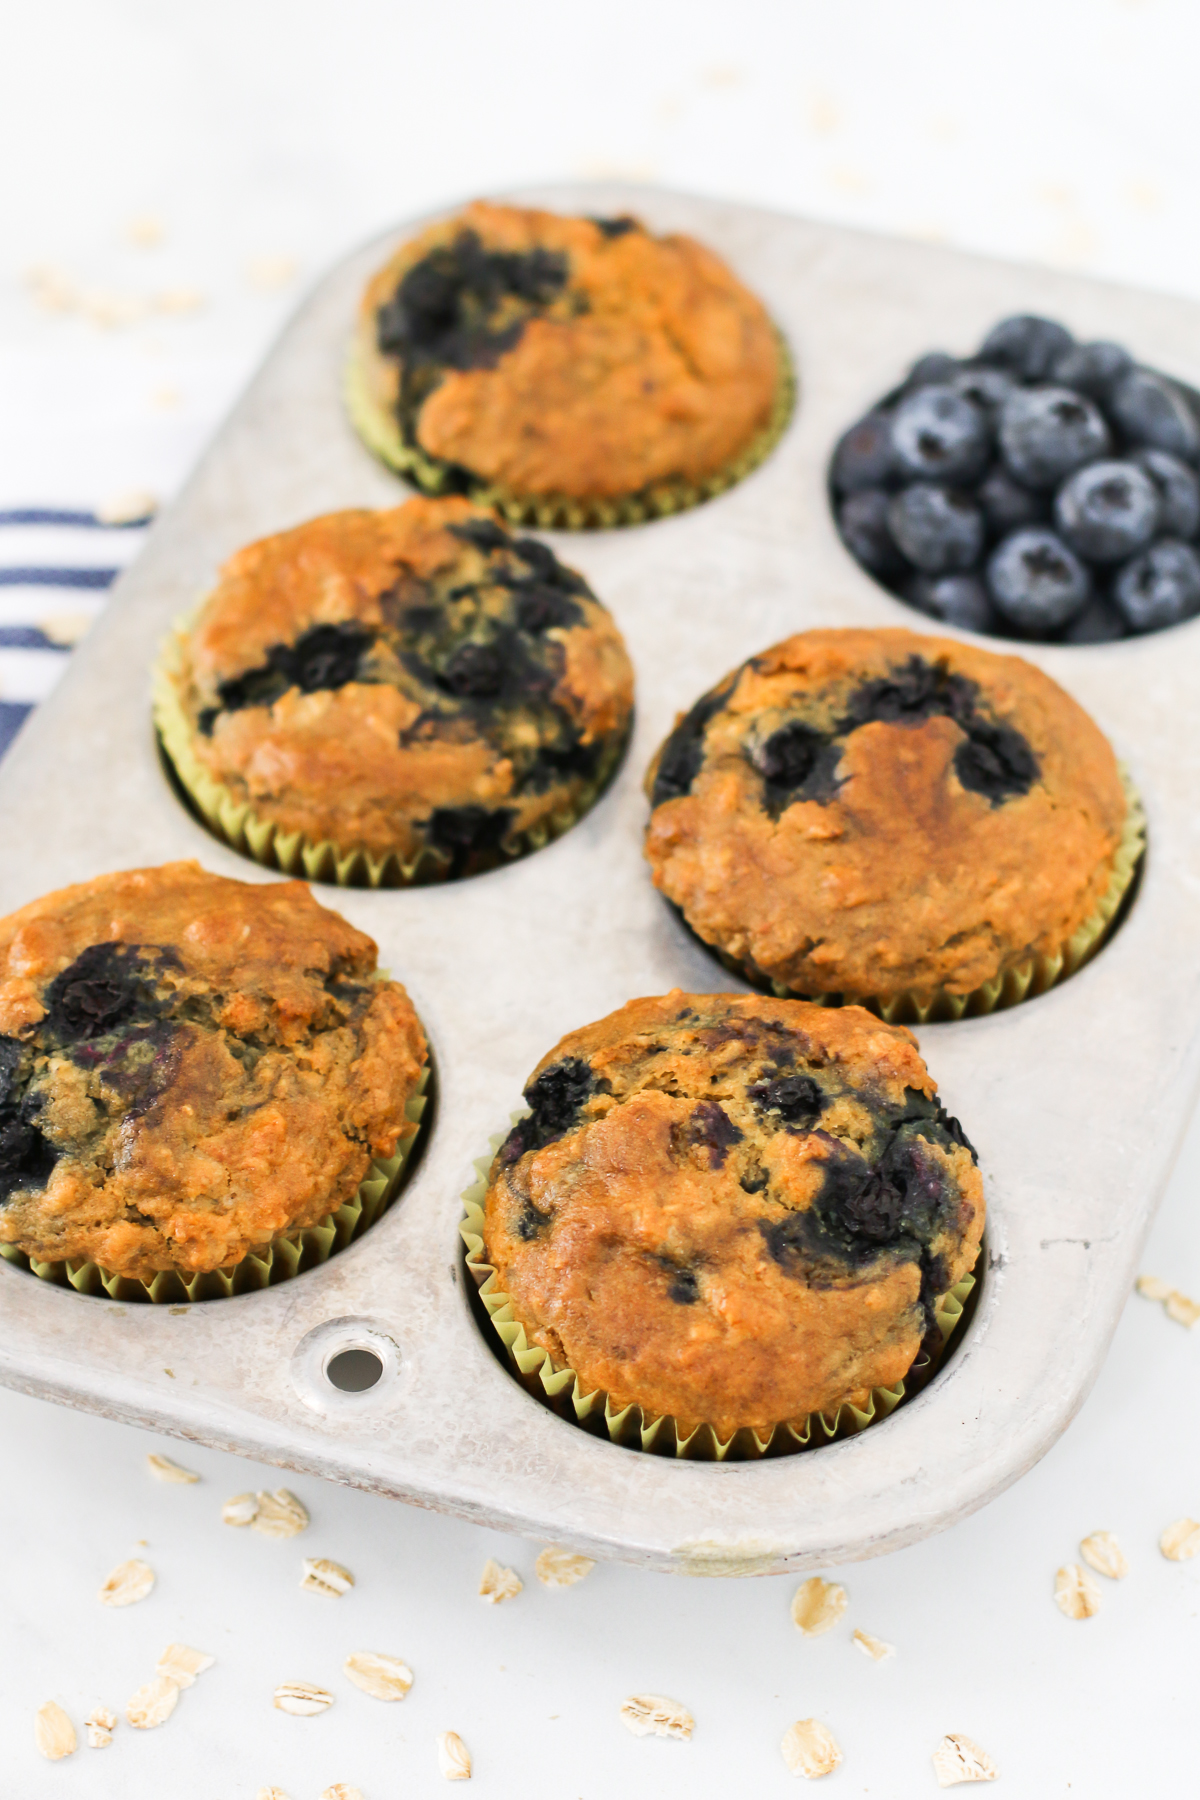 Gluten Free Vegan Blueberry Oatmeal Muffins. Hearty oatmeal muffins, bursting with sweet blueberries.